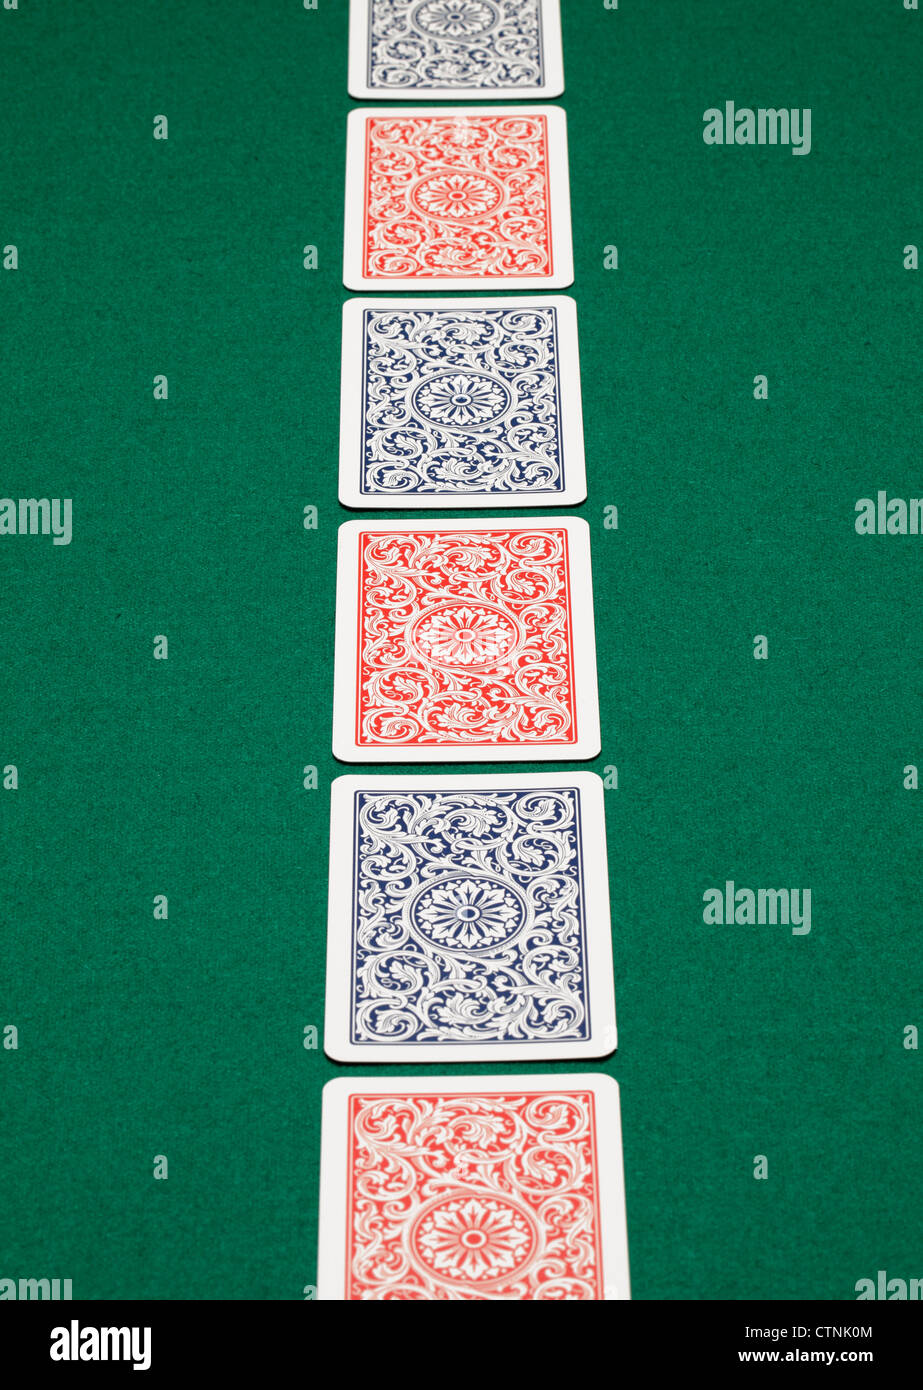 A line of playing cards on a green table. - Stock Image